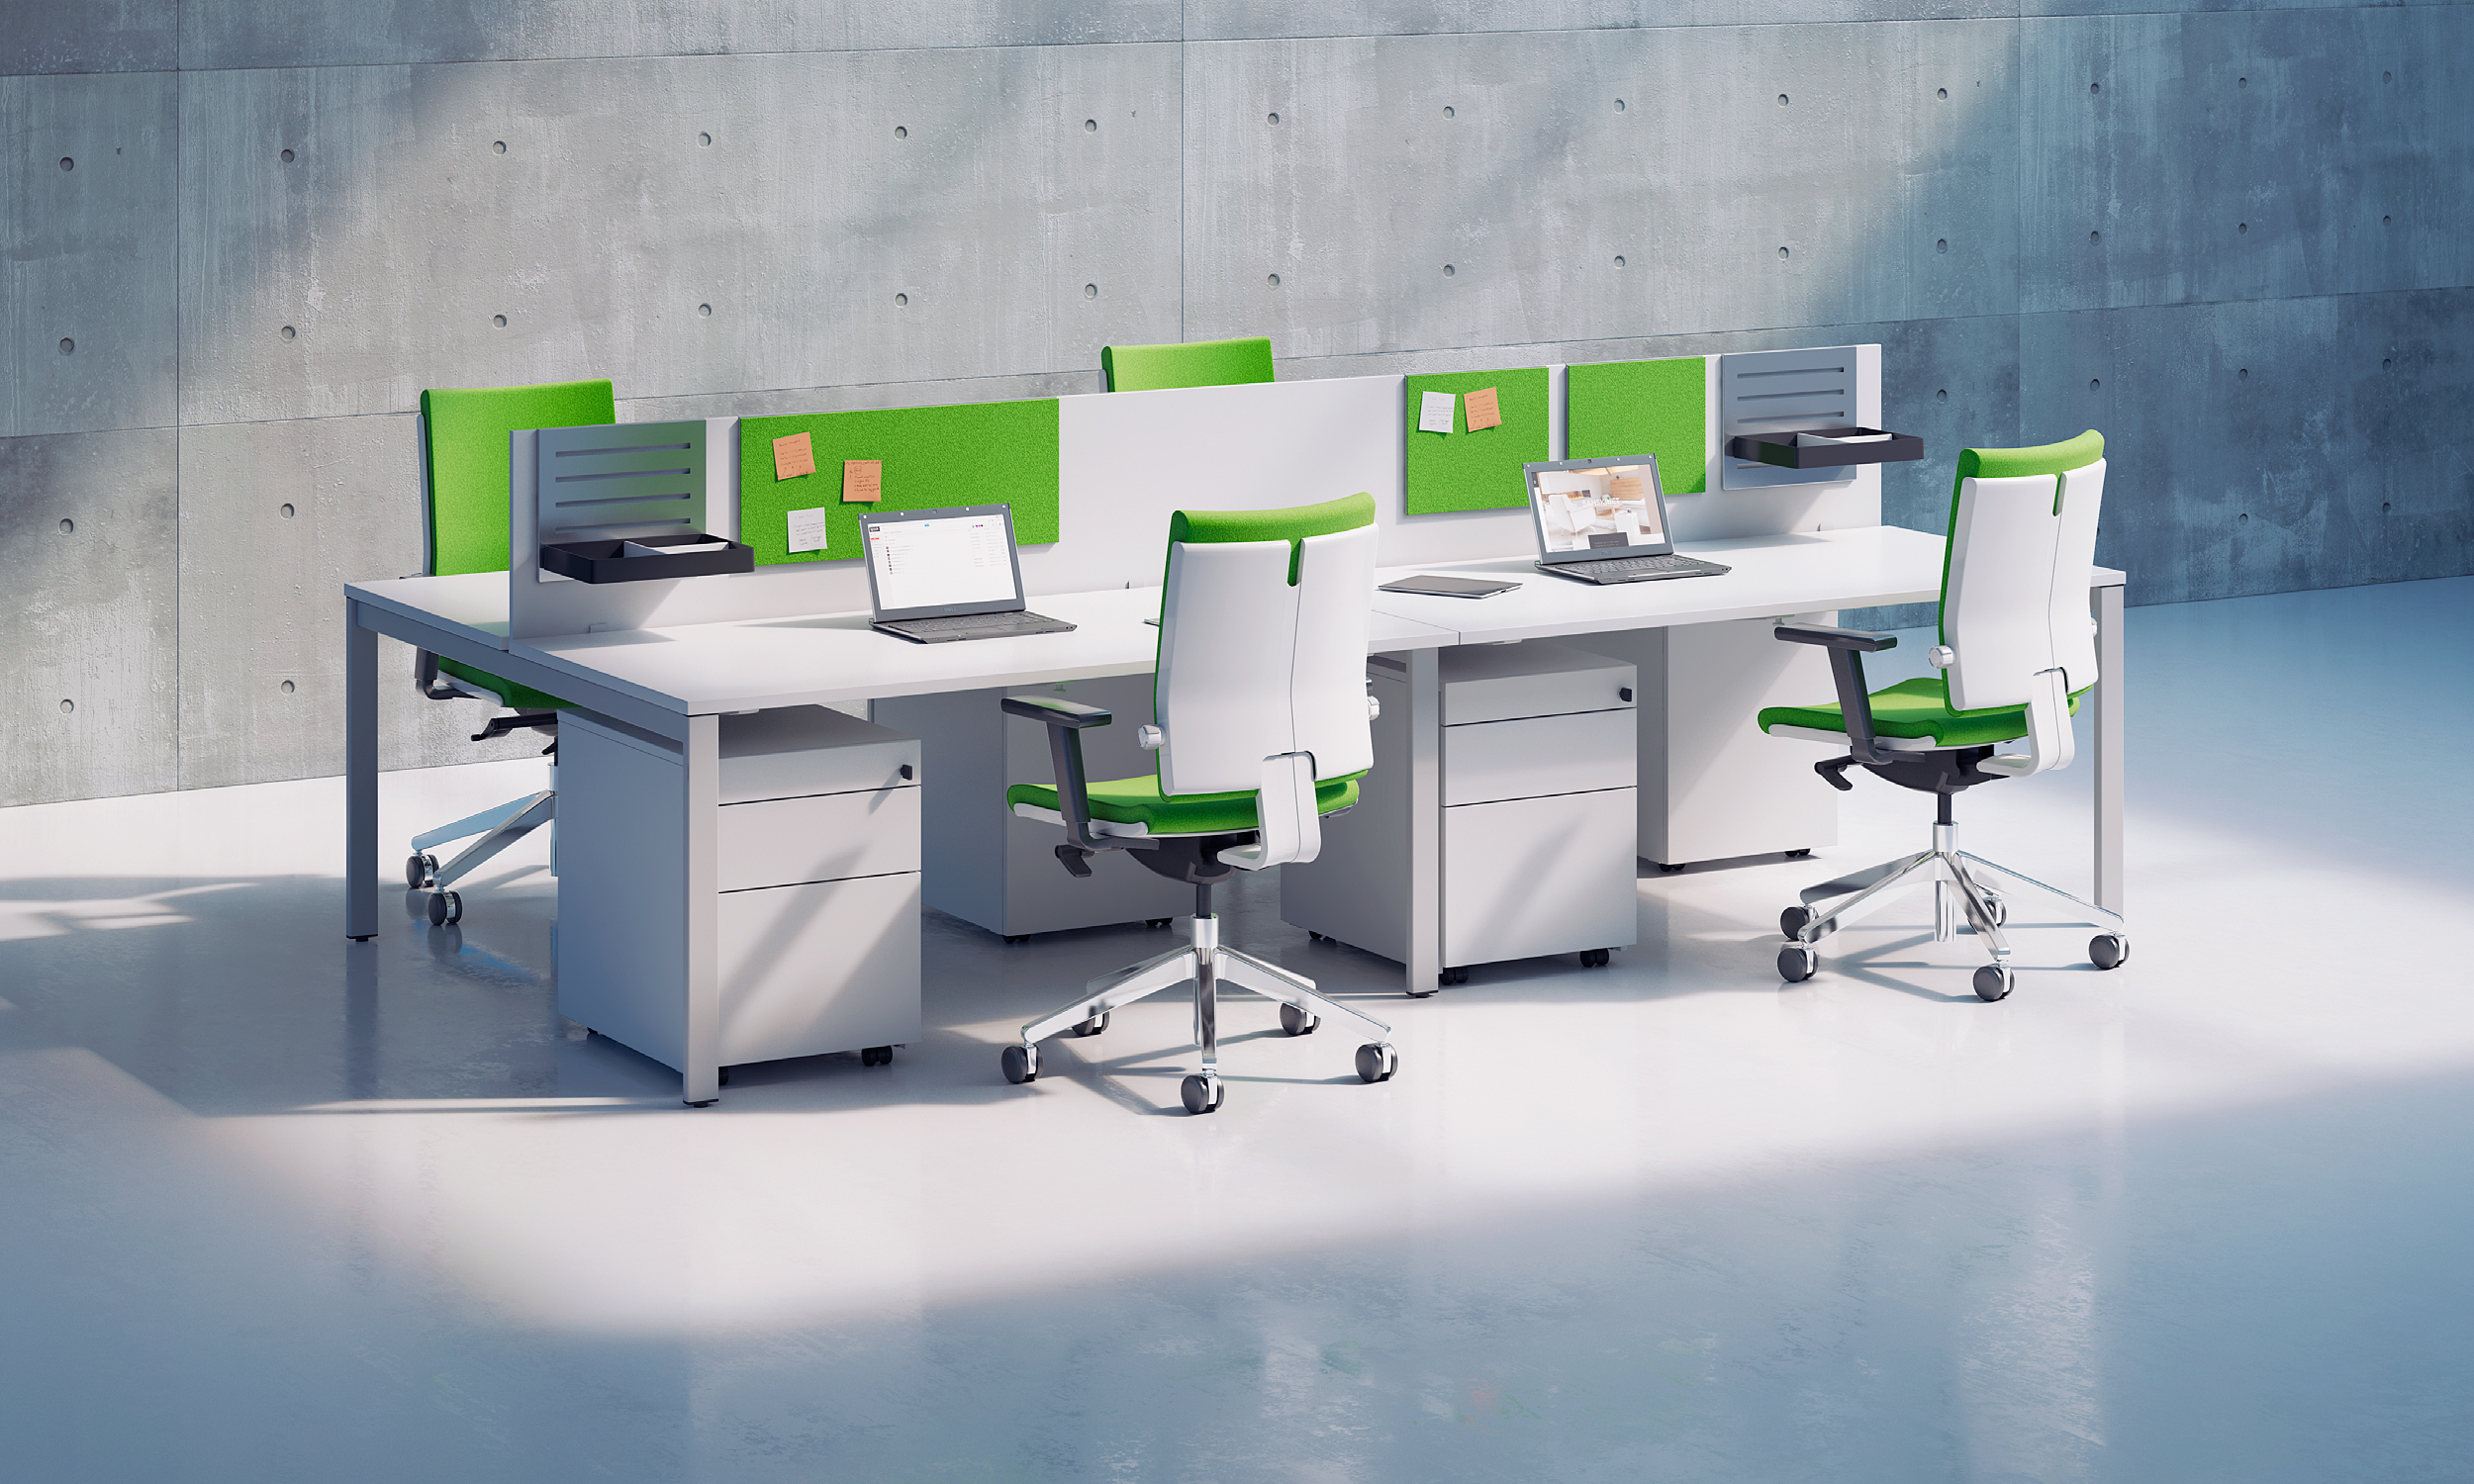 office-furniture_10-6_sqart-18